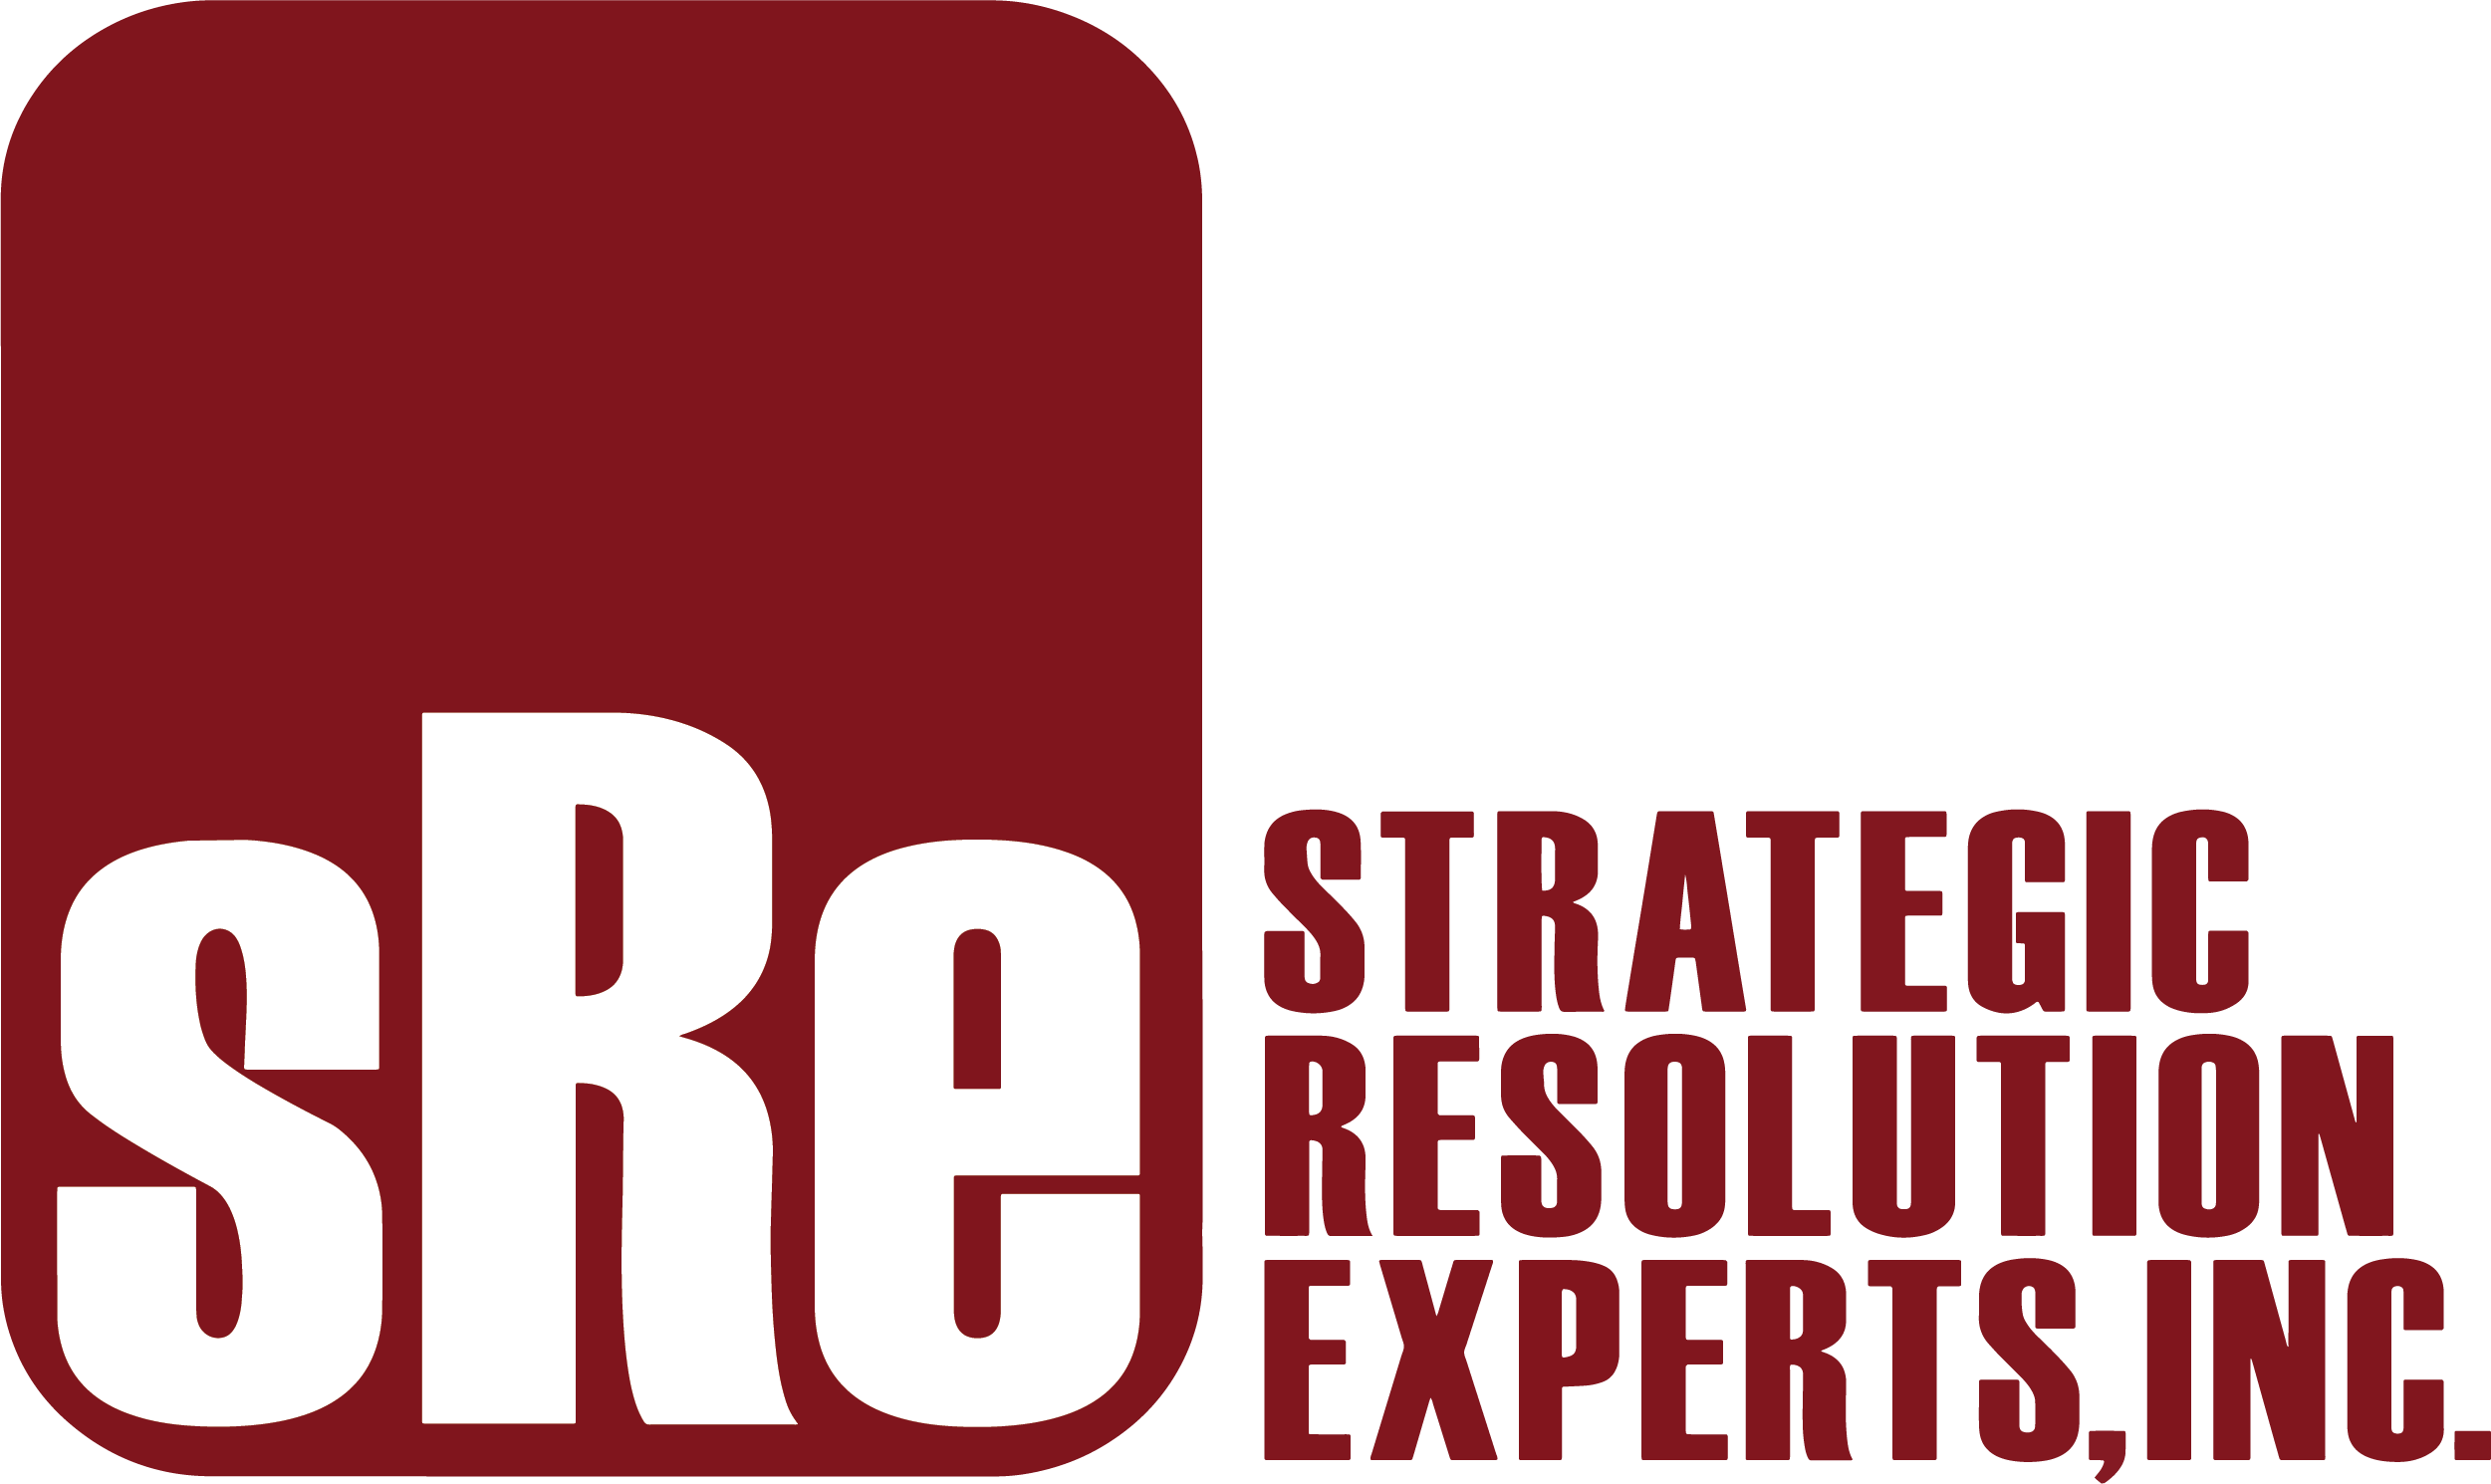 STRATEGIC RESOLUTION EXPERTS